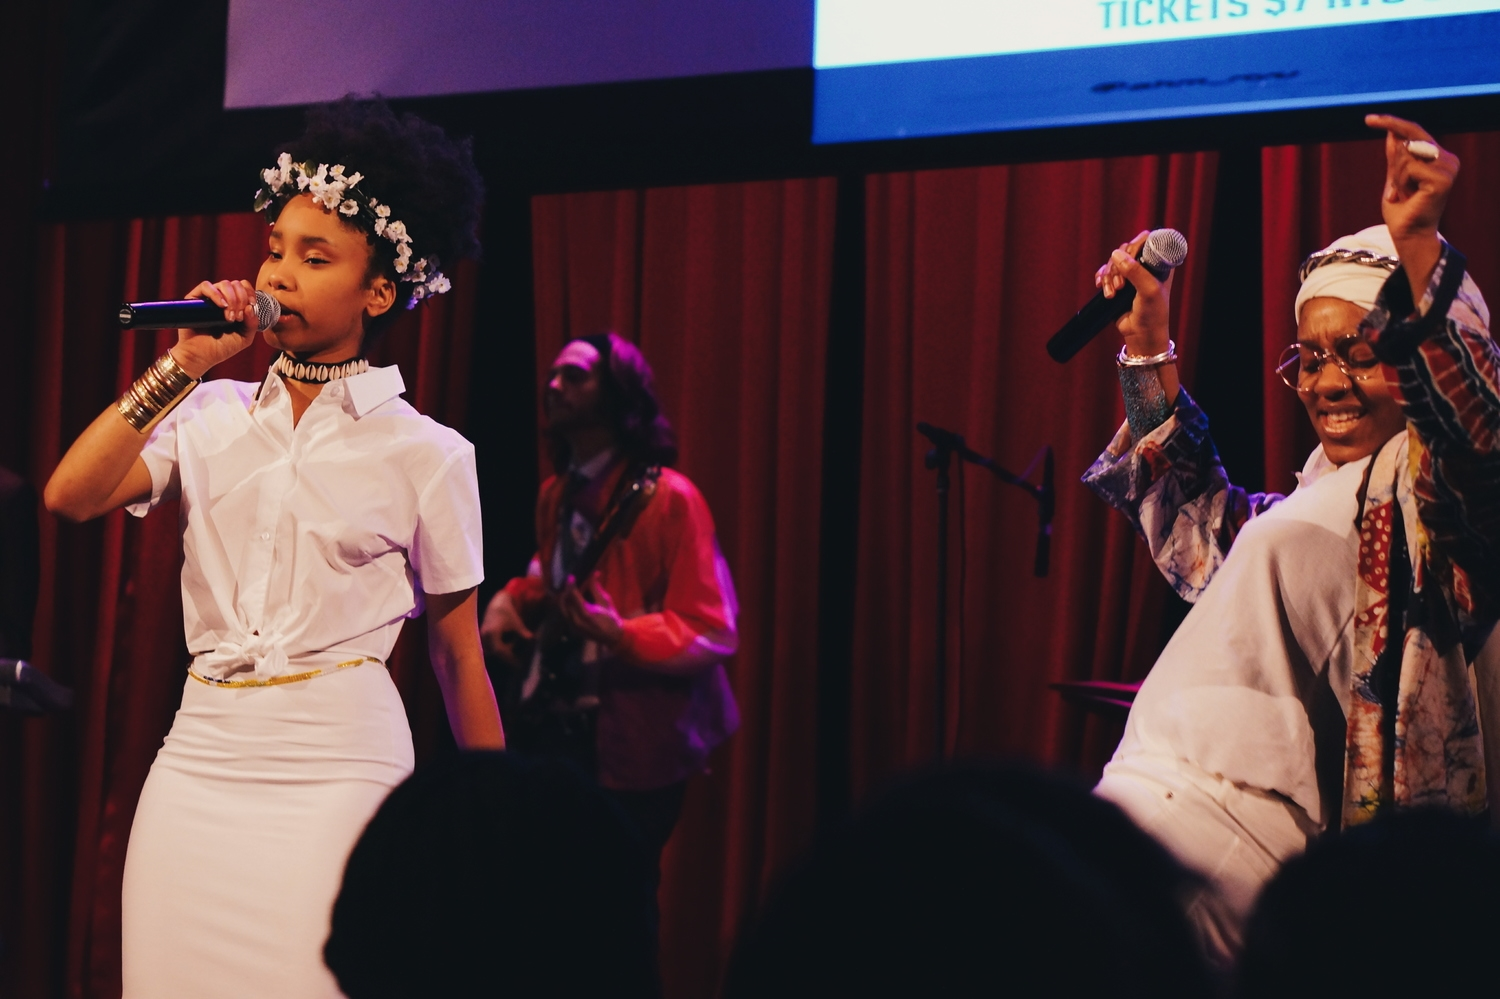 Image of Audience View of OSHUN Show in NYC earlier this year, Courtesty of OSHUN